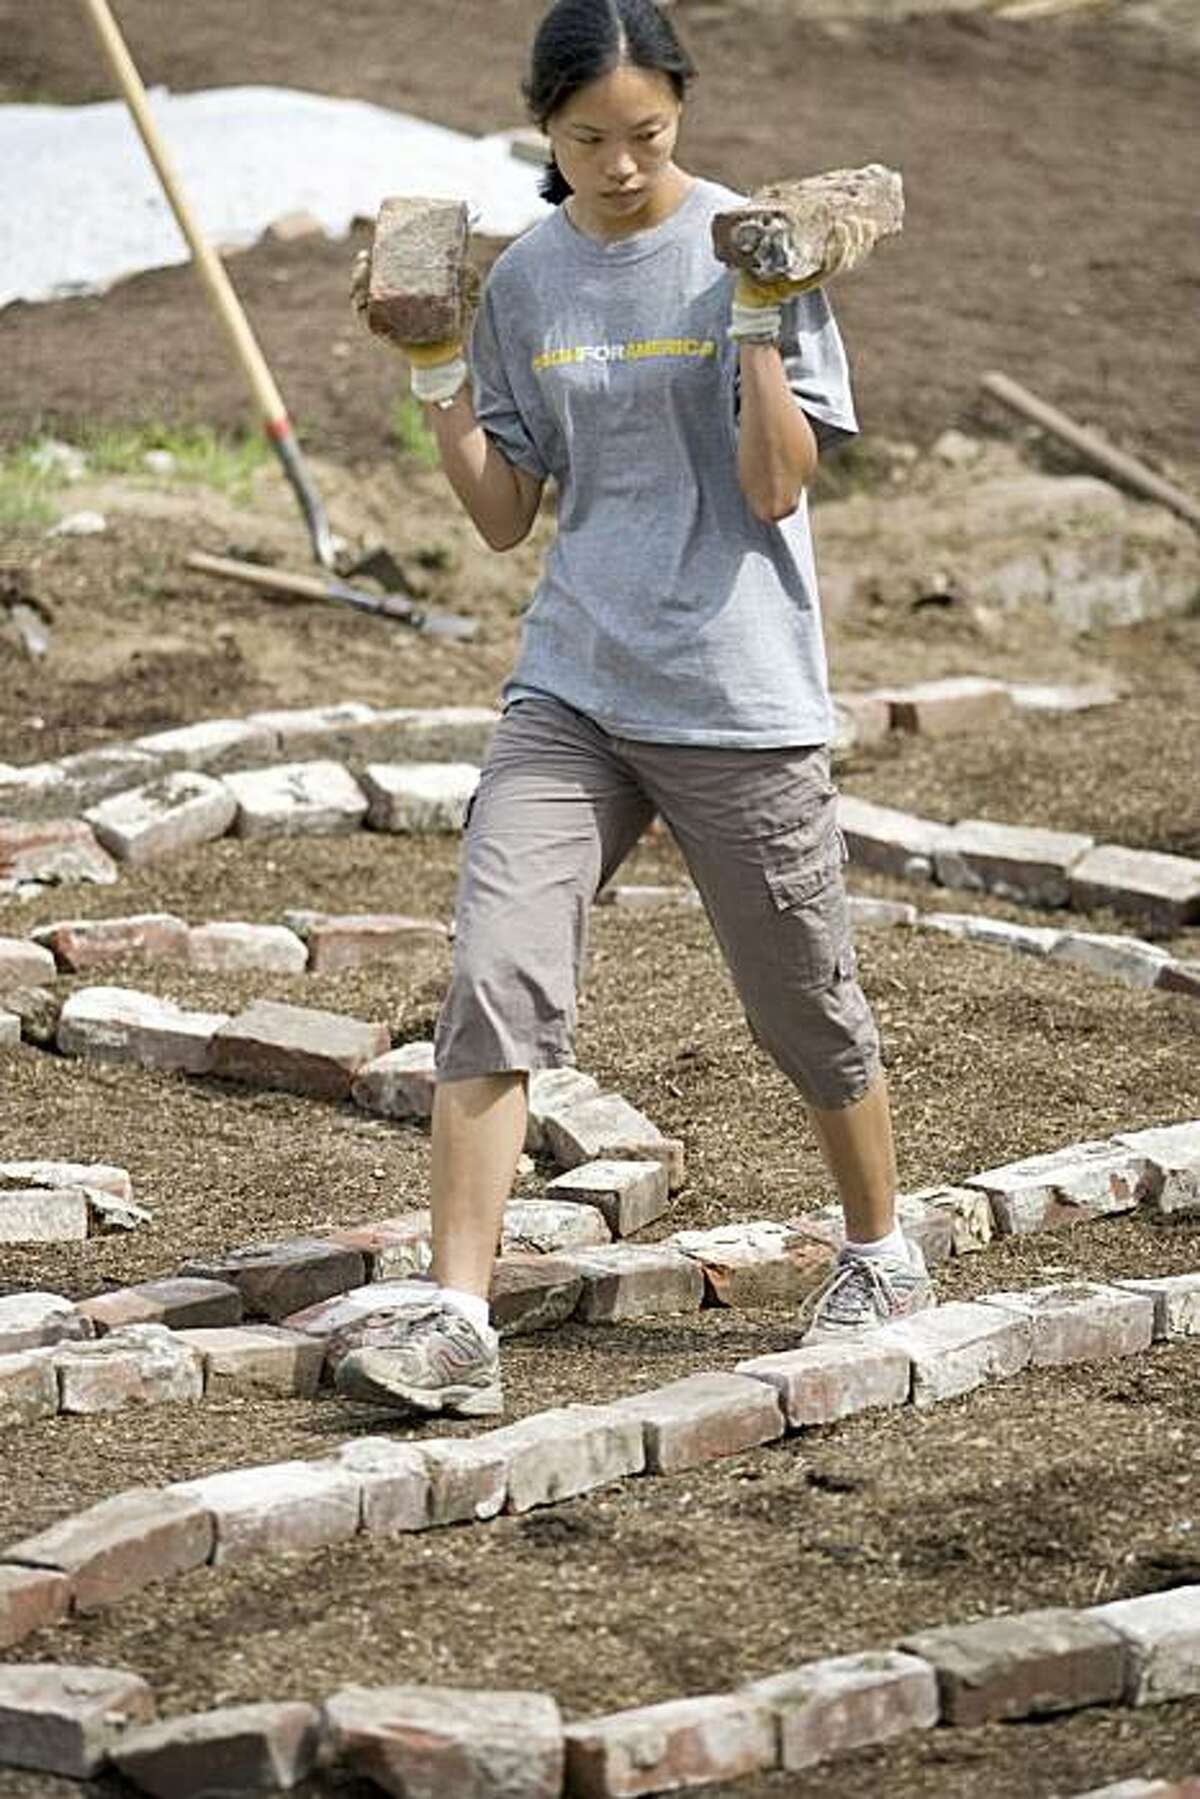 Wendy Landerholm who works with the organization Urban Sprouts, replaces the stone outline of a Labyrinth / herb garden with bricks while volunteering at an urban farm at the corner of Gough and Eddy in San Francisco, Calif. on Saturday, March 20, 2010. Kat Wade / Special to the Chronicle